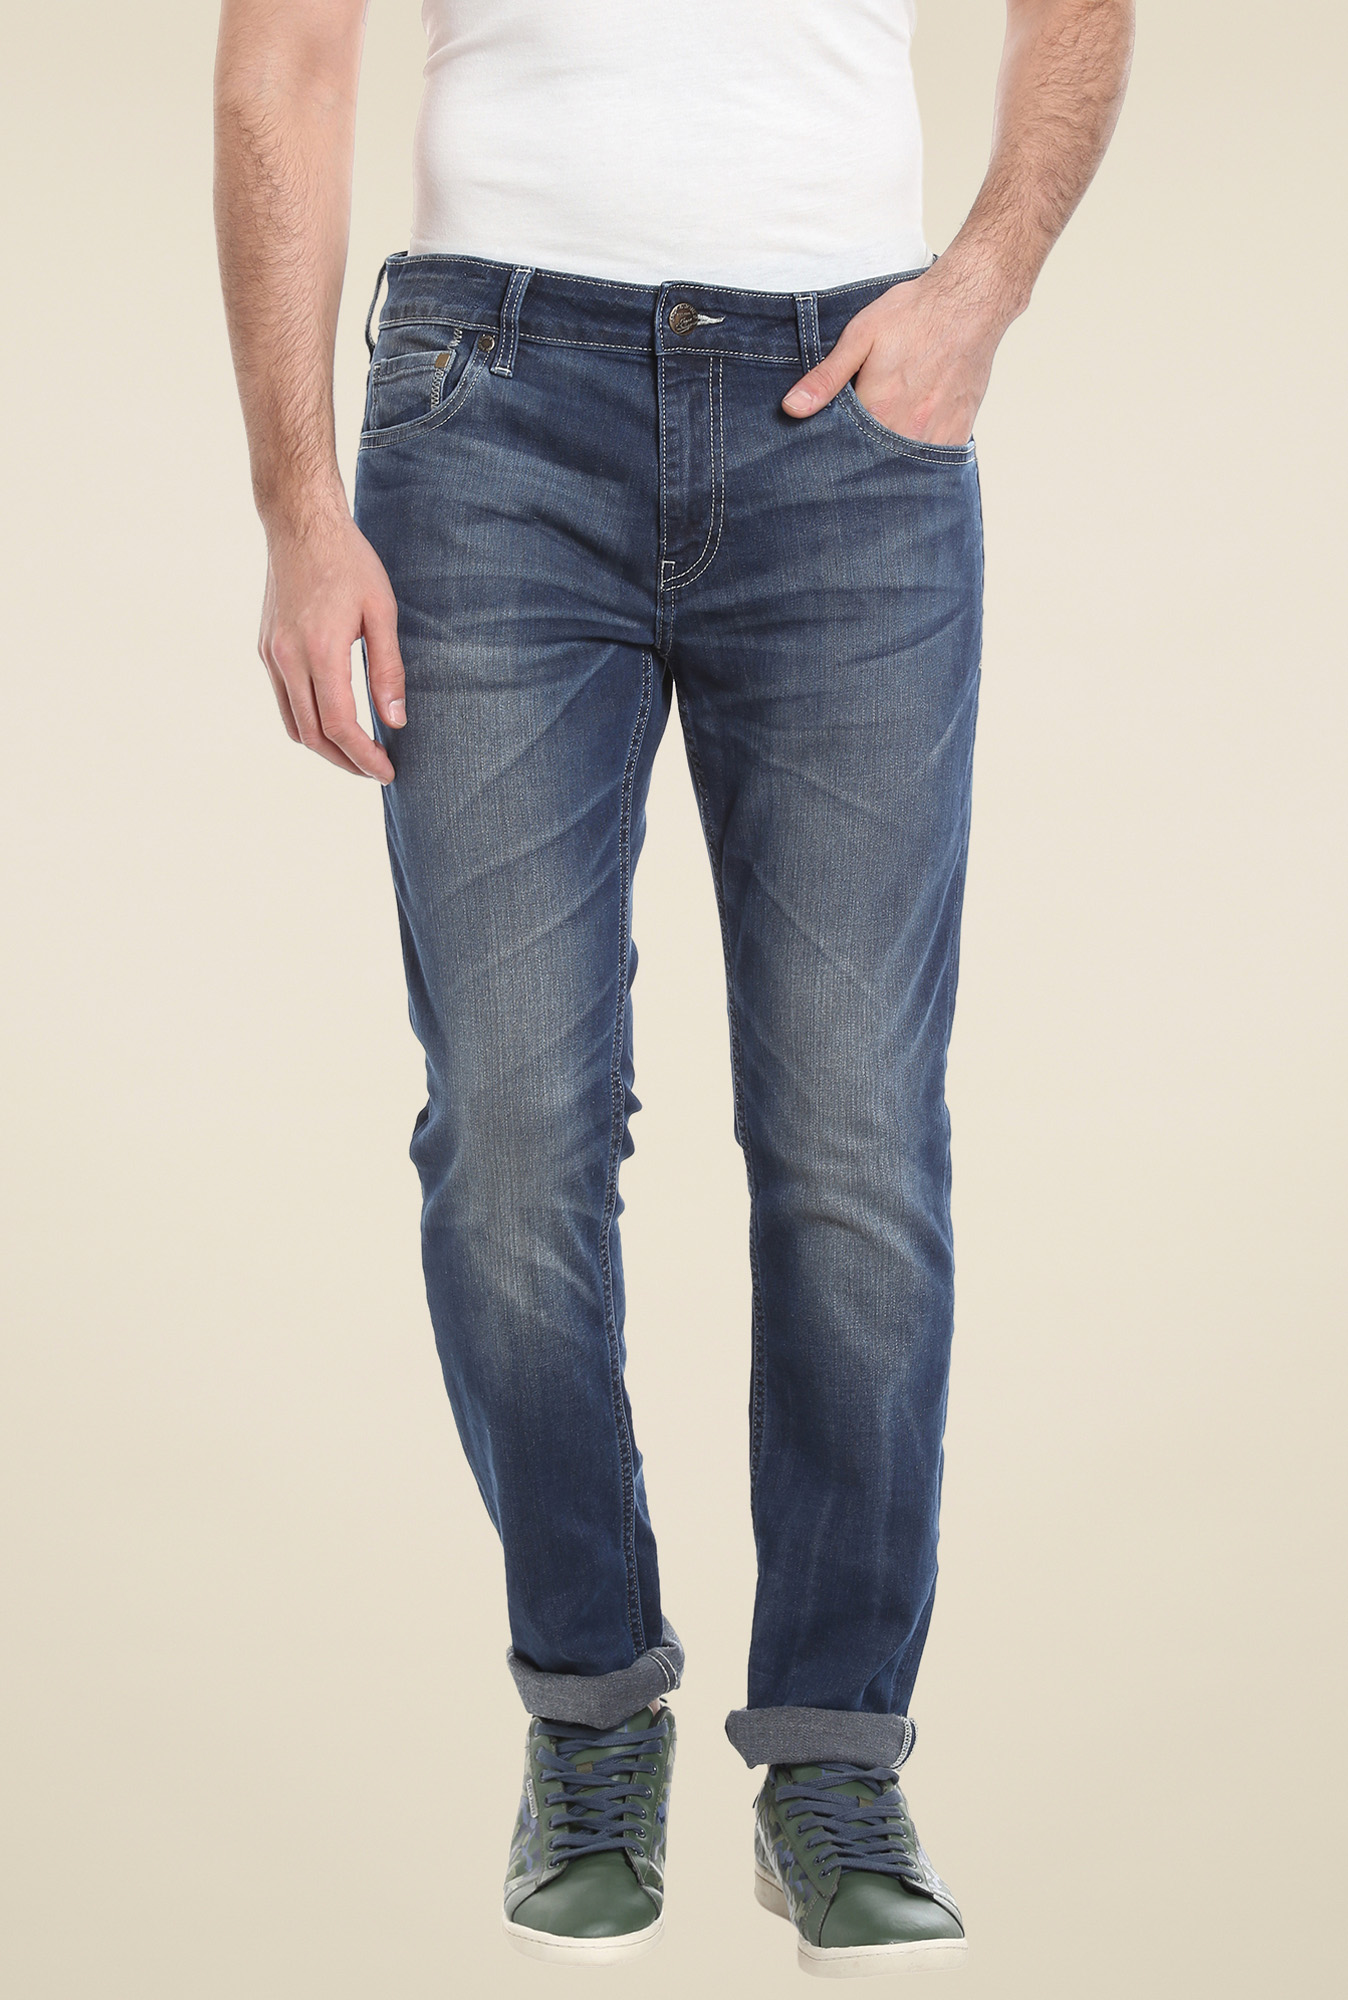 Jack & Jones Dark Blue Low Rise Cotton Jeans